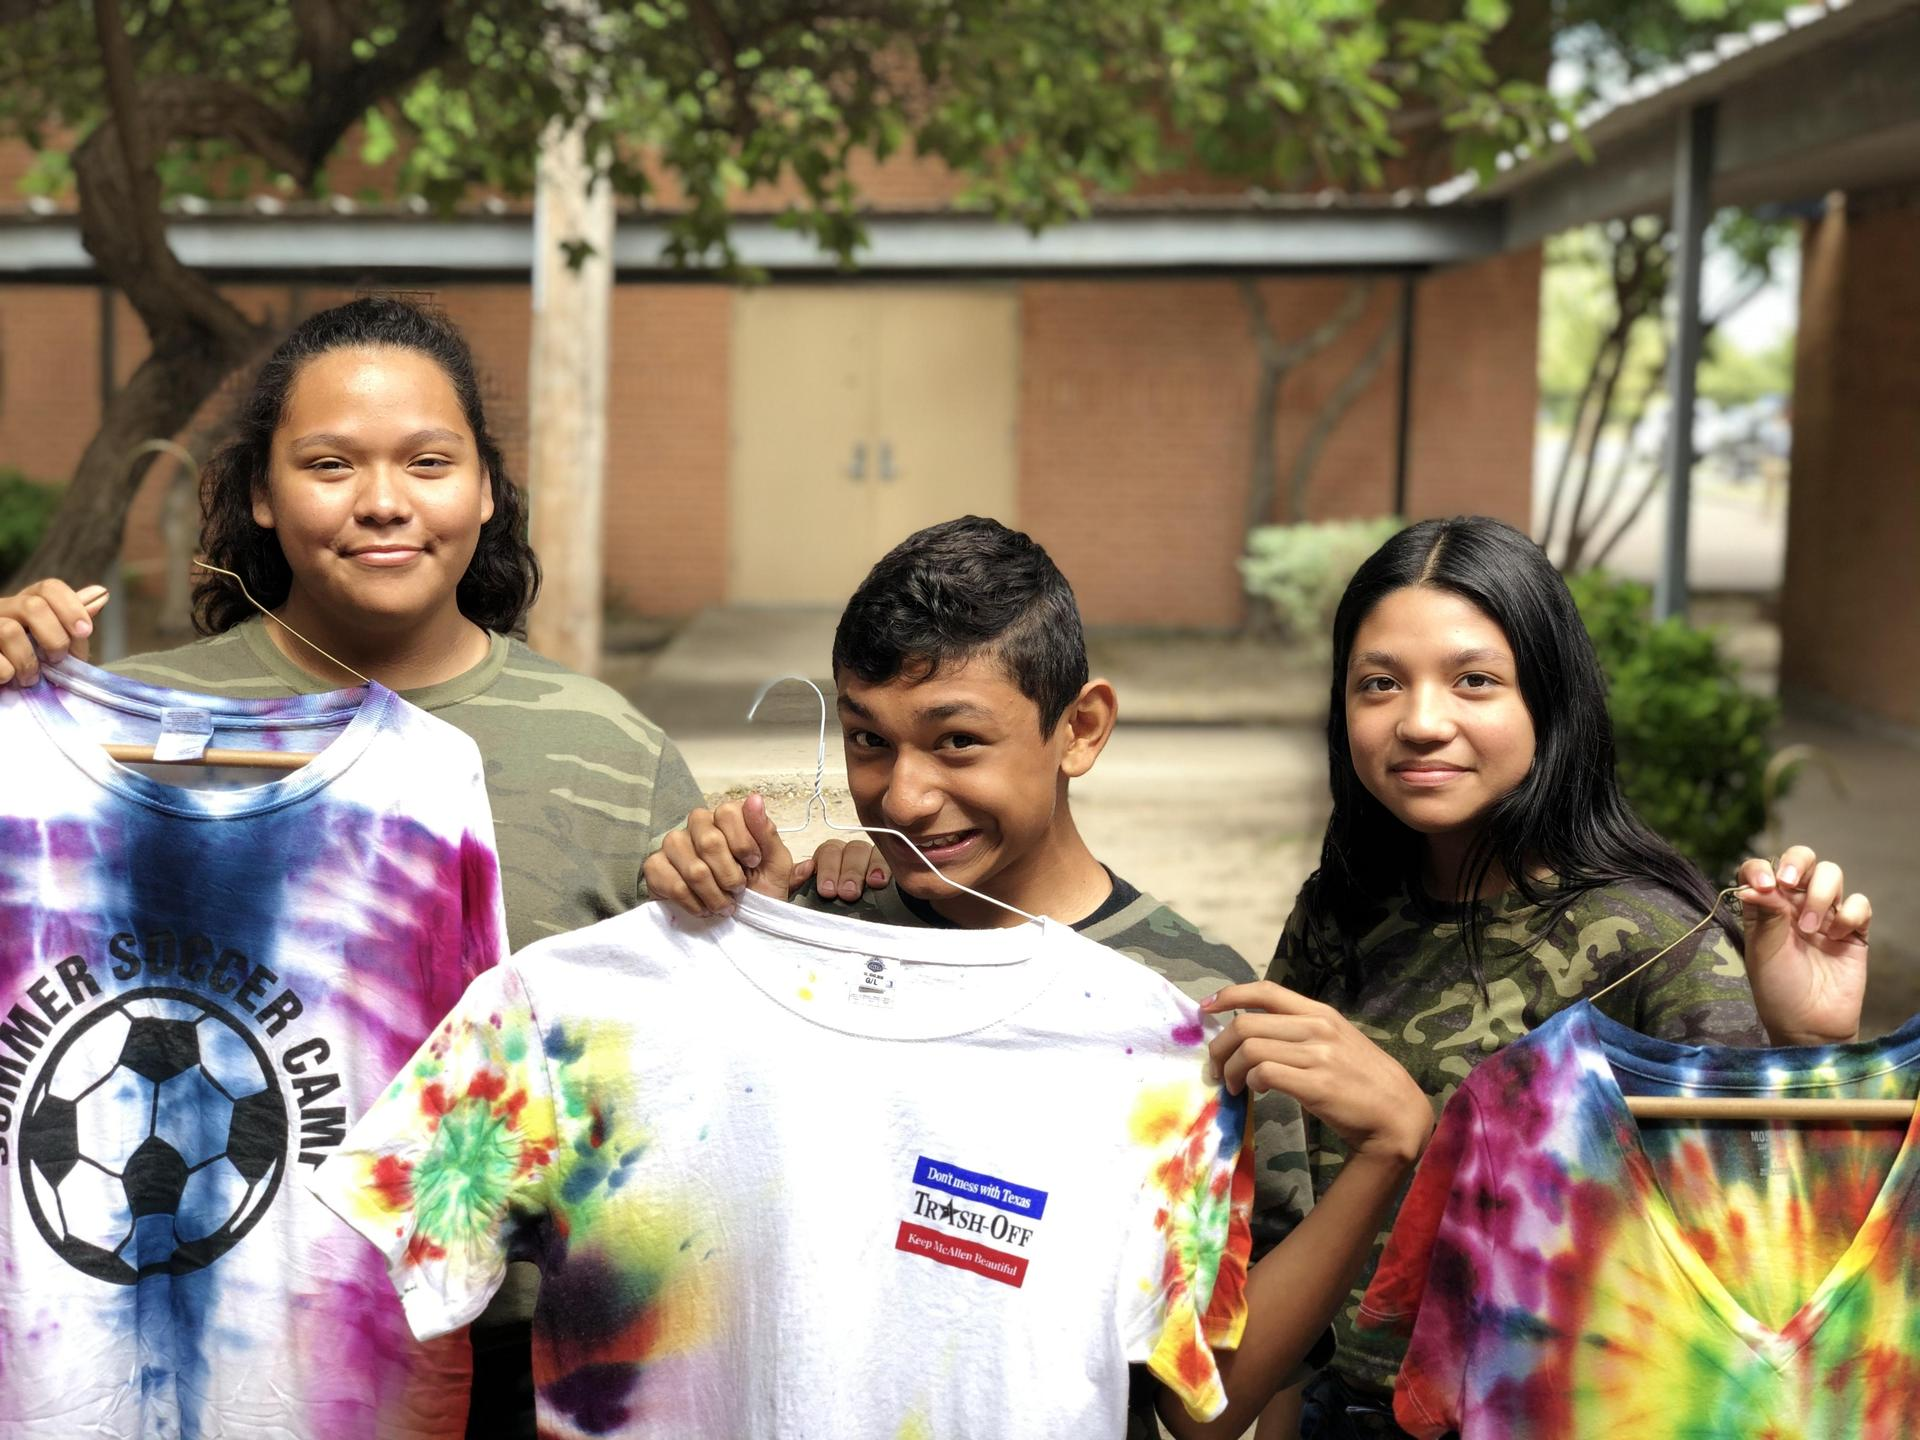 Students pose with shirts.